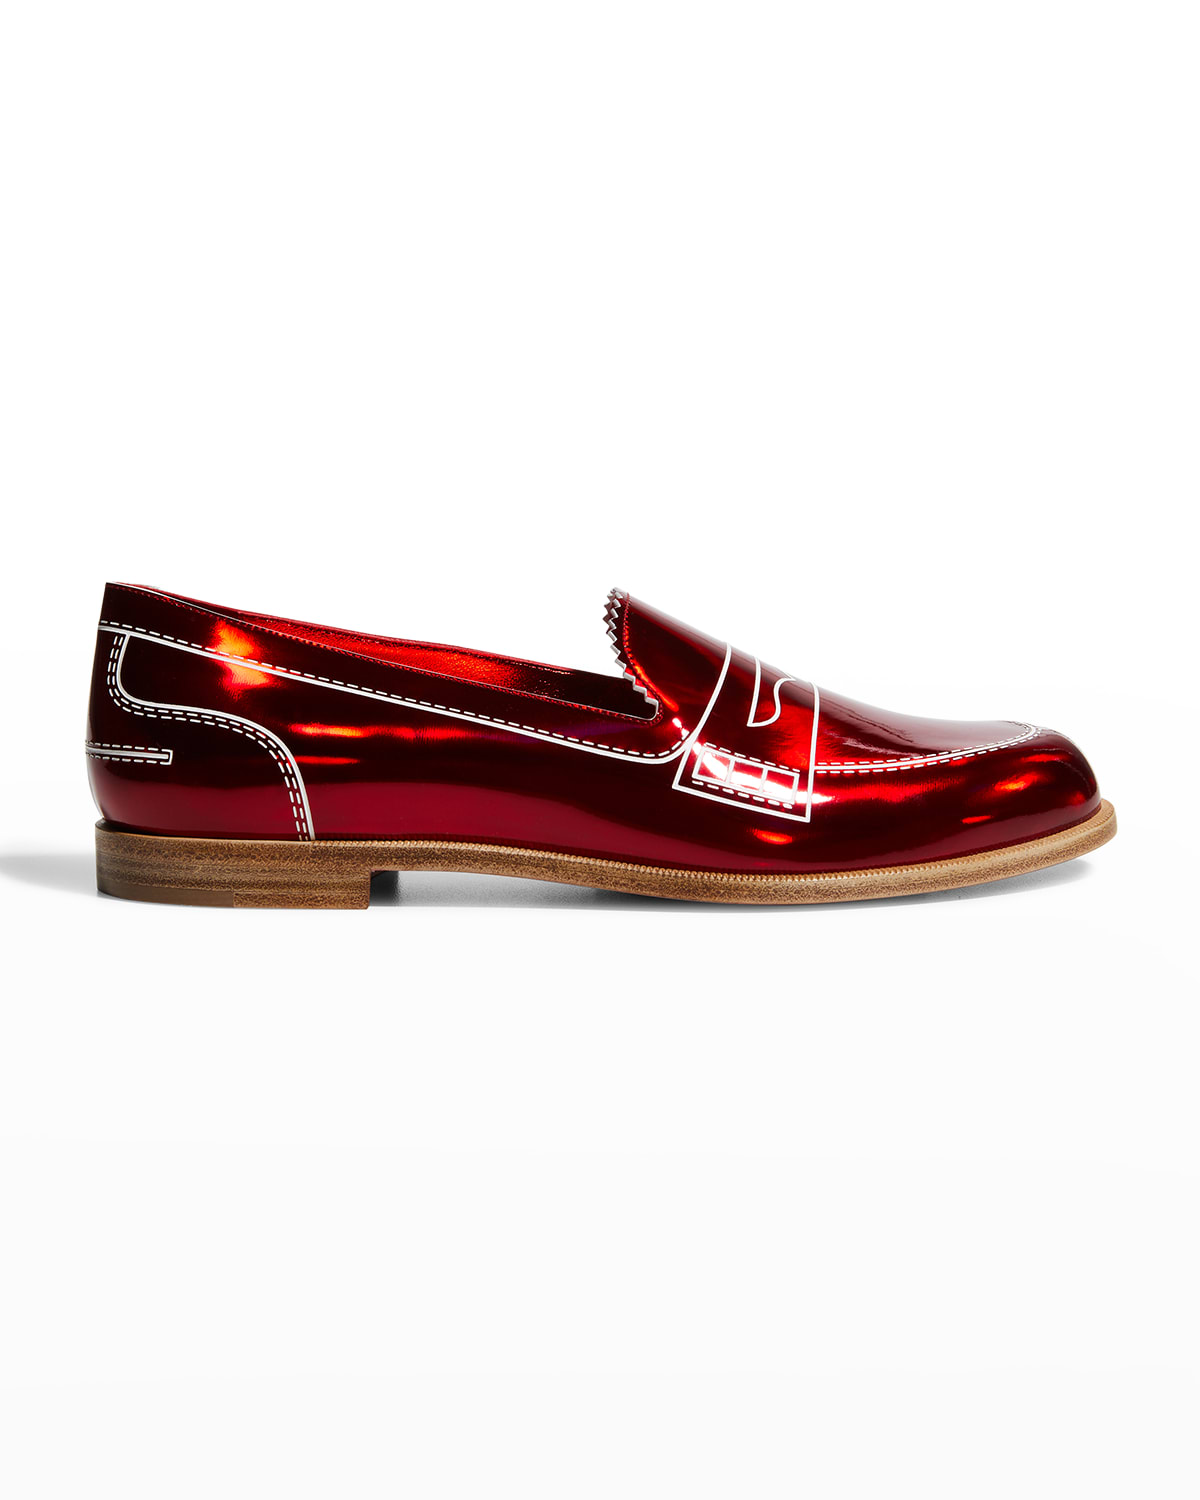 Printed Patent Penny Loafers